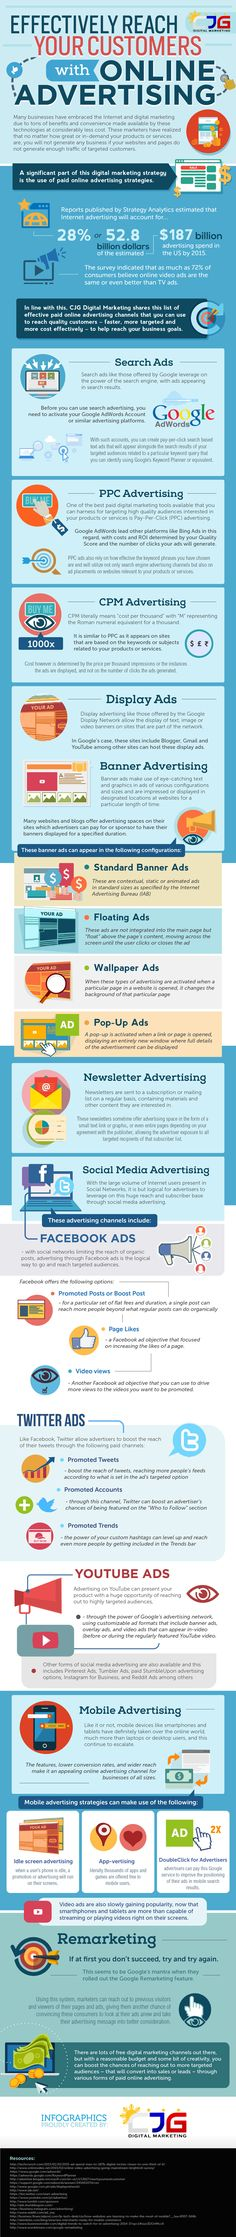 Effectively Reach Your Customers with Online Advertising [Infographic]   via @borntobesocial